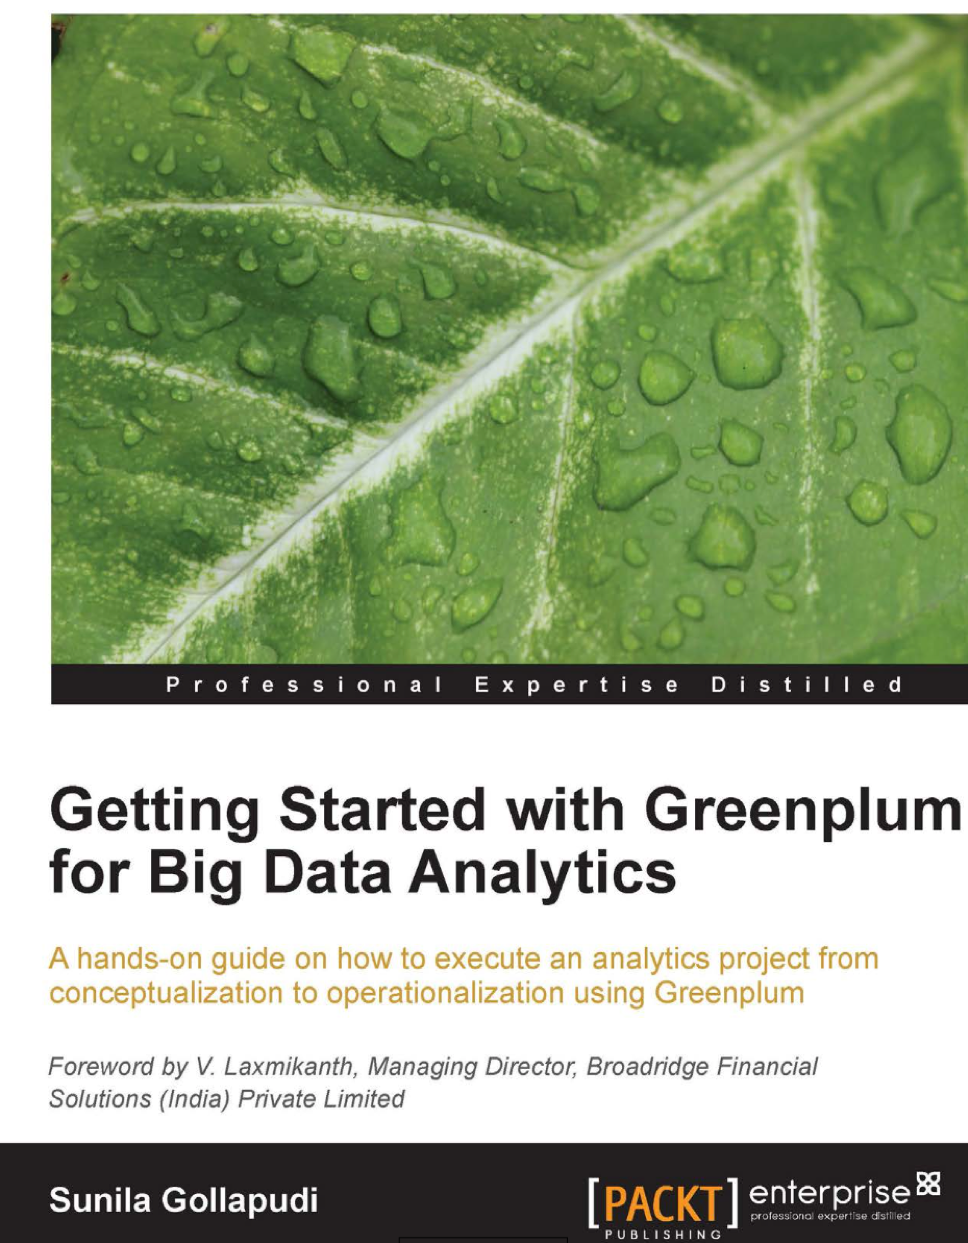 Getting Started with Greenplum for Big Data Analytics at Social-Media.press